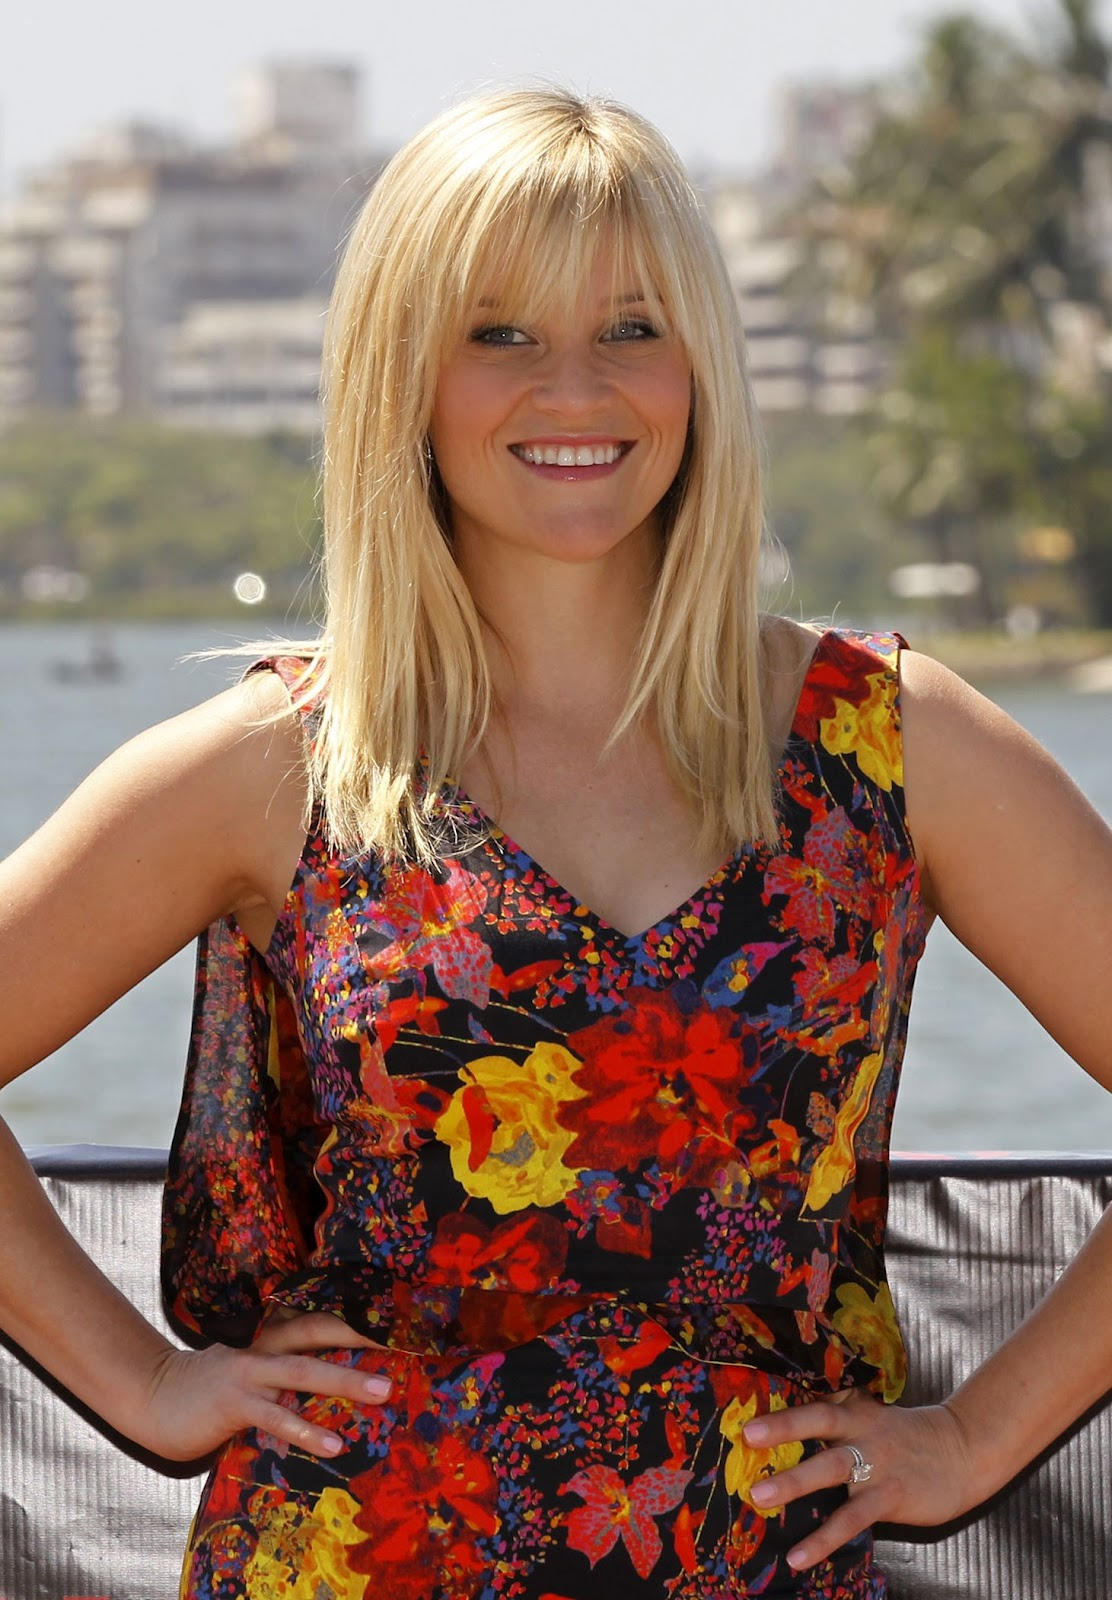 Reese Witherspoon Hairstyle Trends Reese Witherspoon Hairstyle Trends